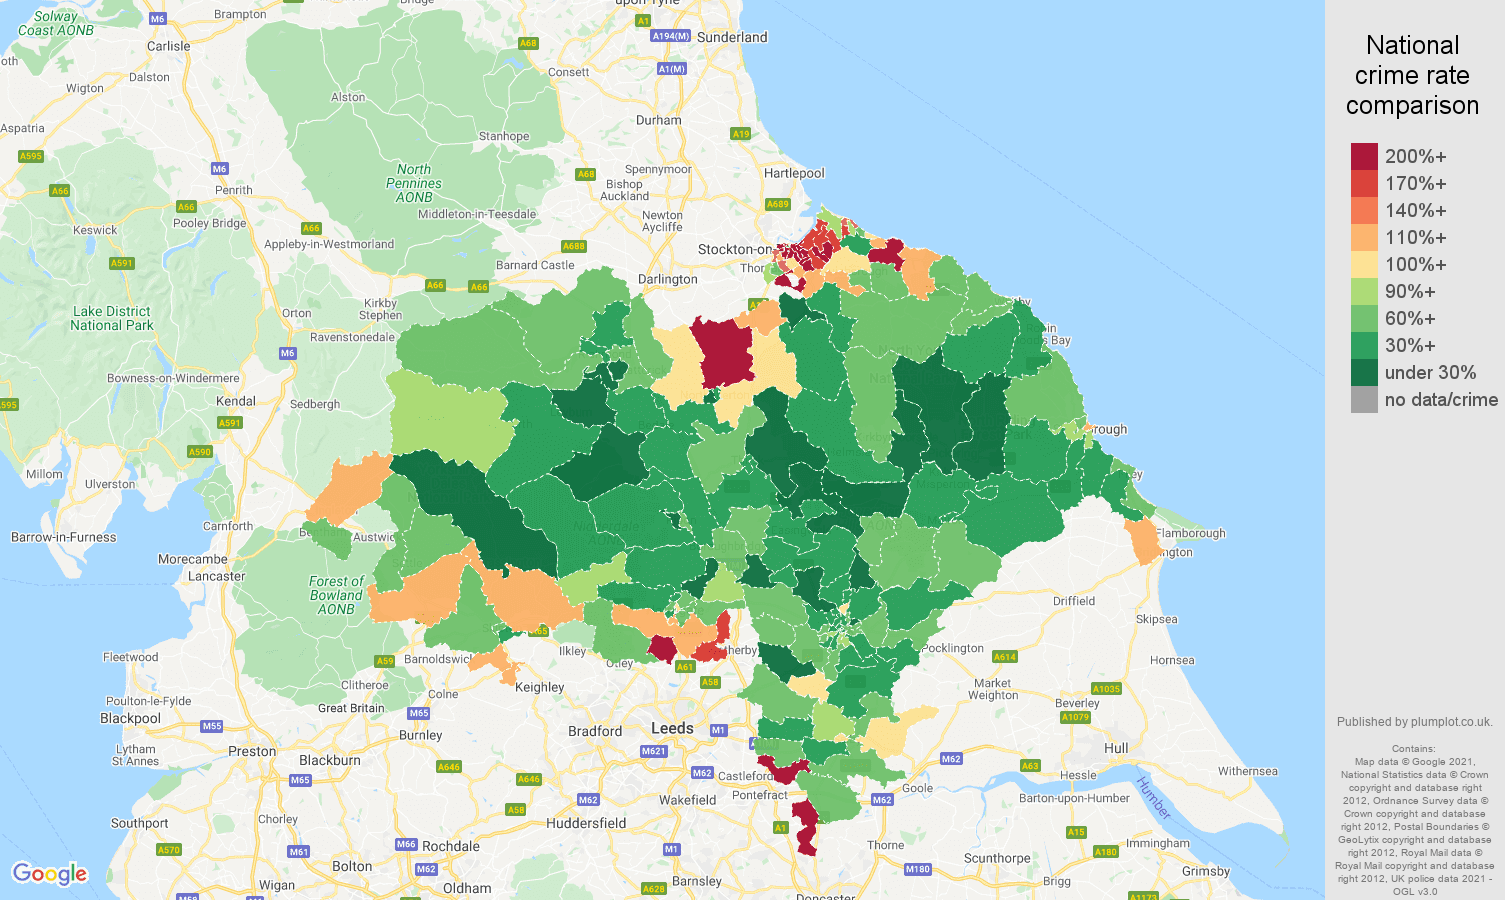 North Yorkshire burglary crime rate comparison map